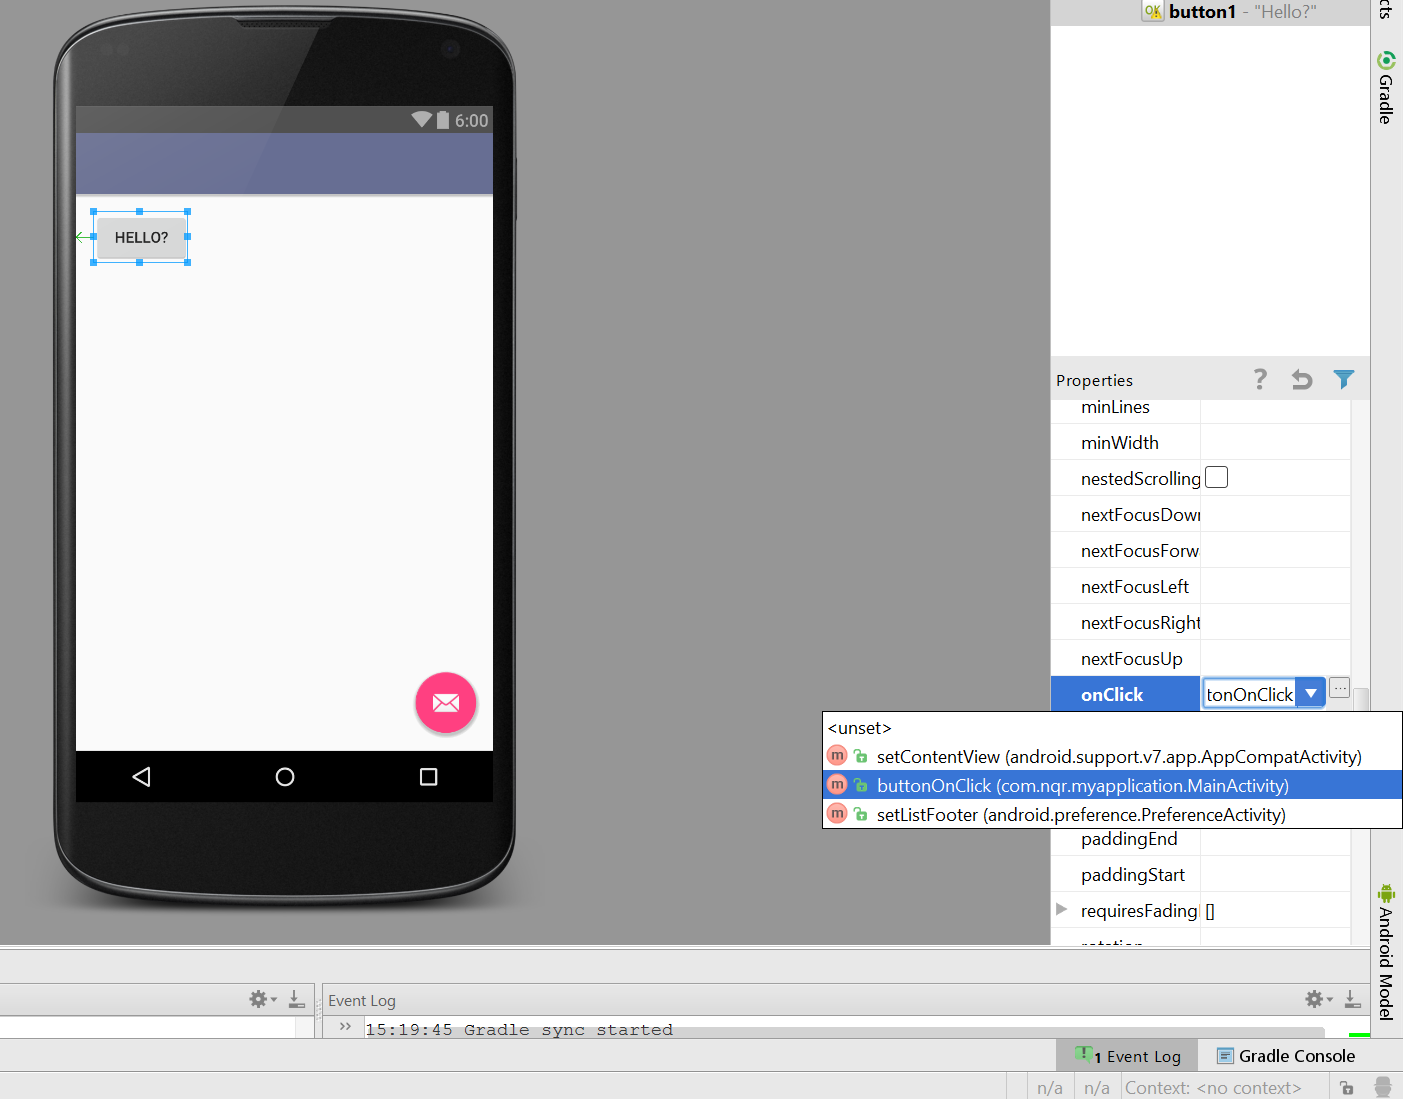 How to get started with Android application development with